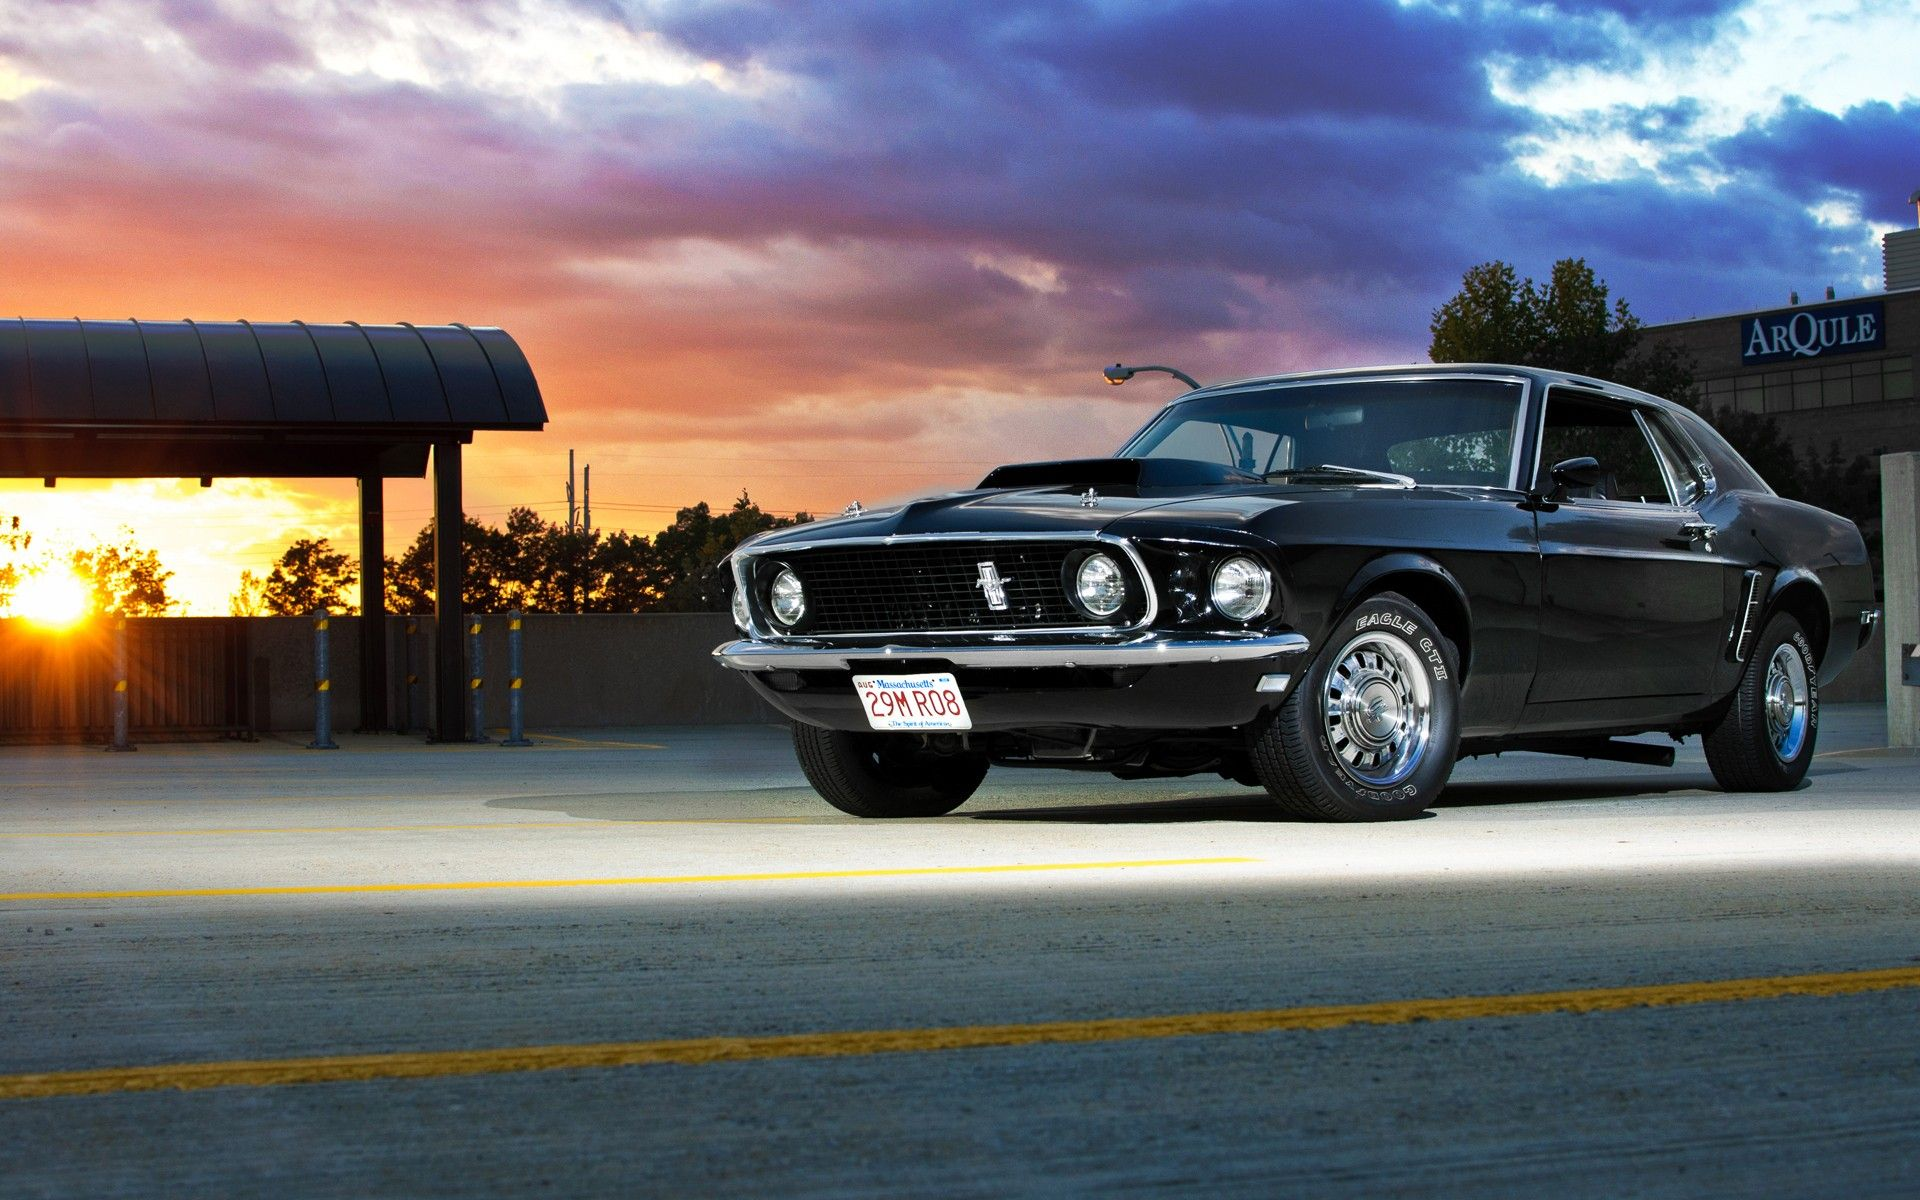 Cool Muscle Car Hd Wallpapers Muscle Cars Mustang Mustang